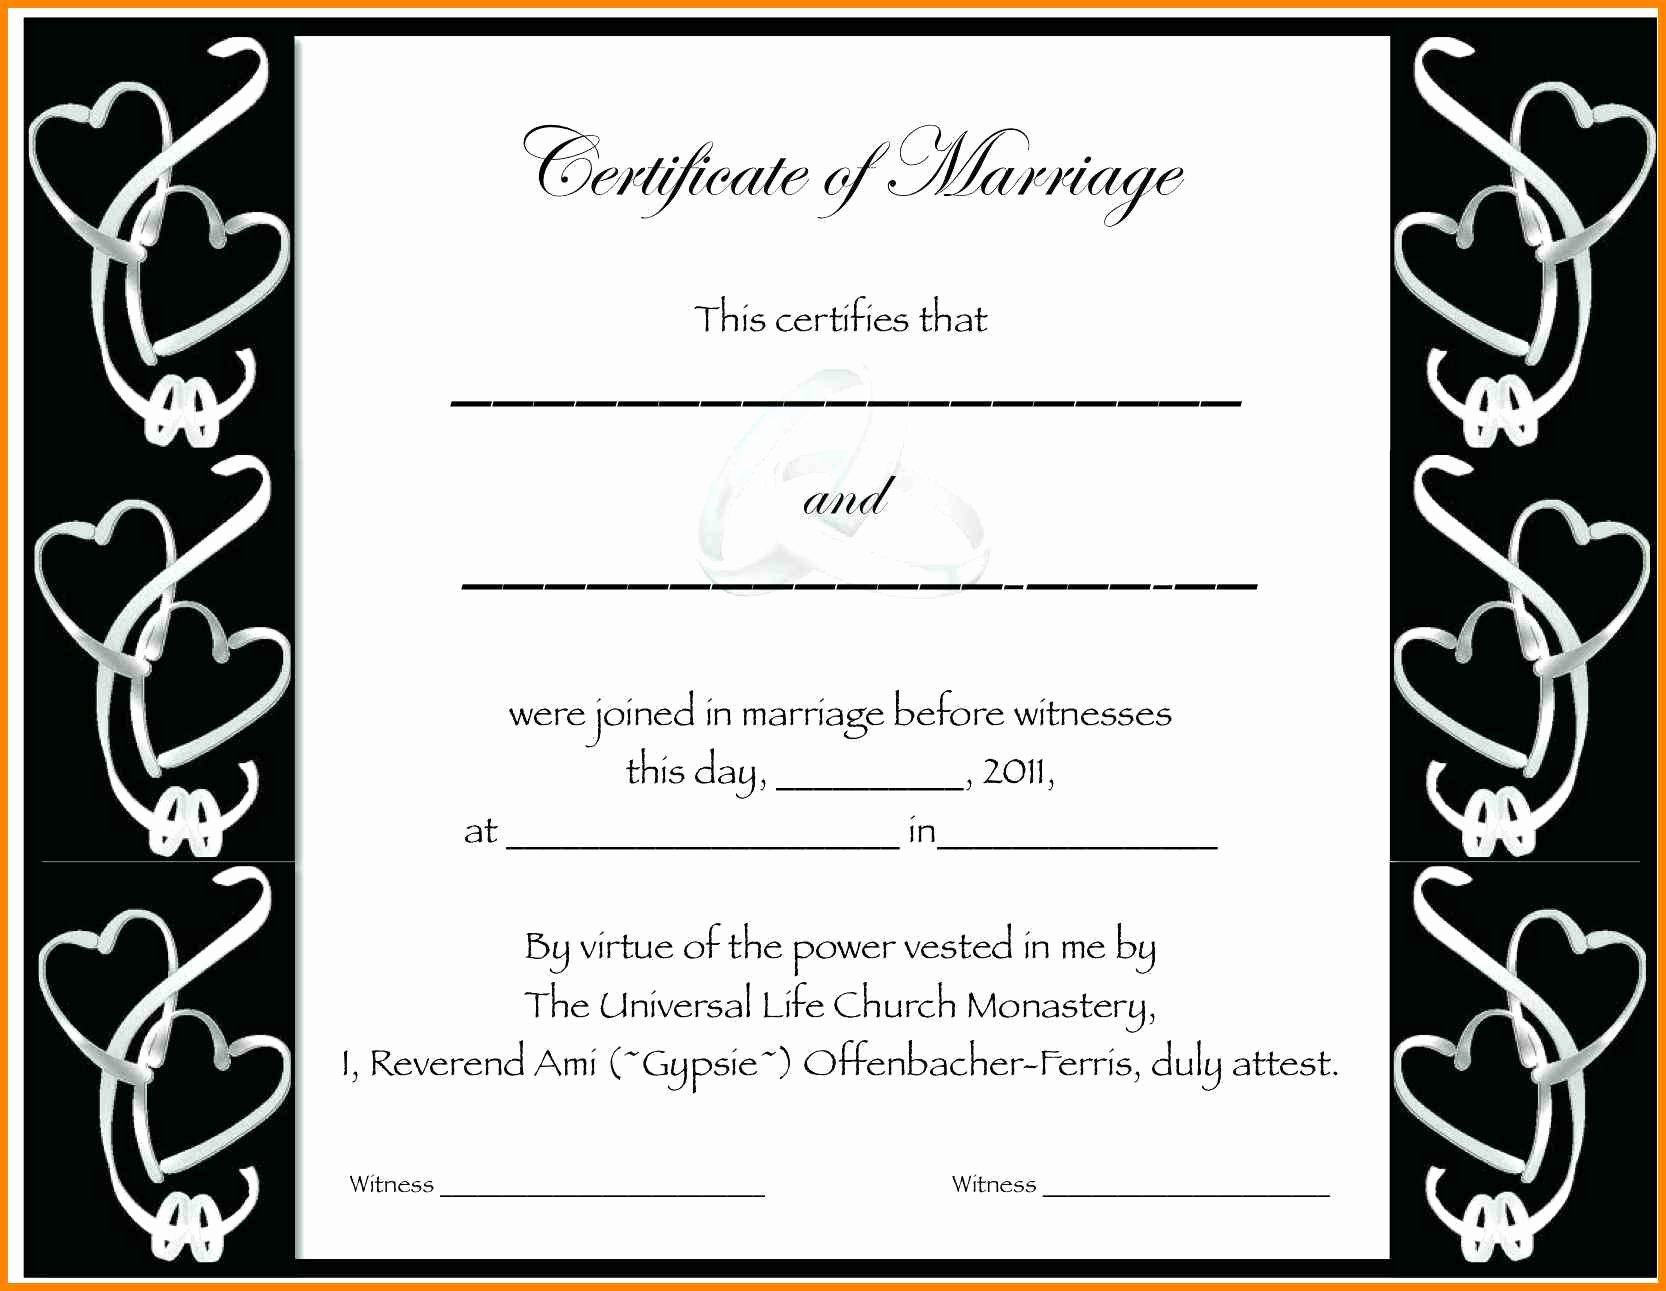 Fake Marriage Certificate Template Elegant 5 Fake Marriage Certificate Template Free